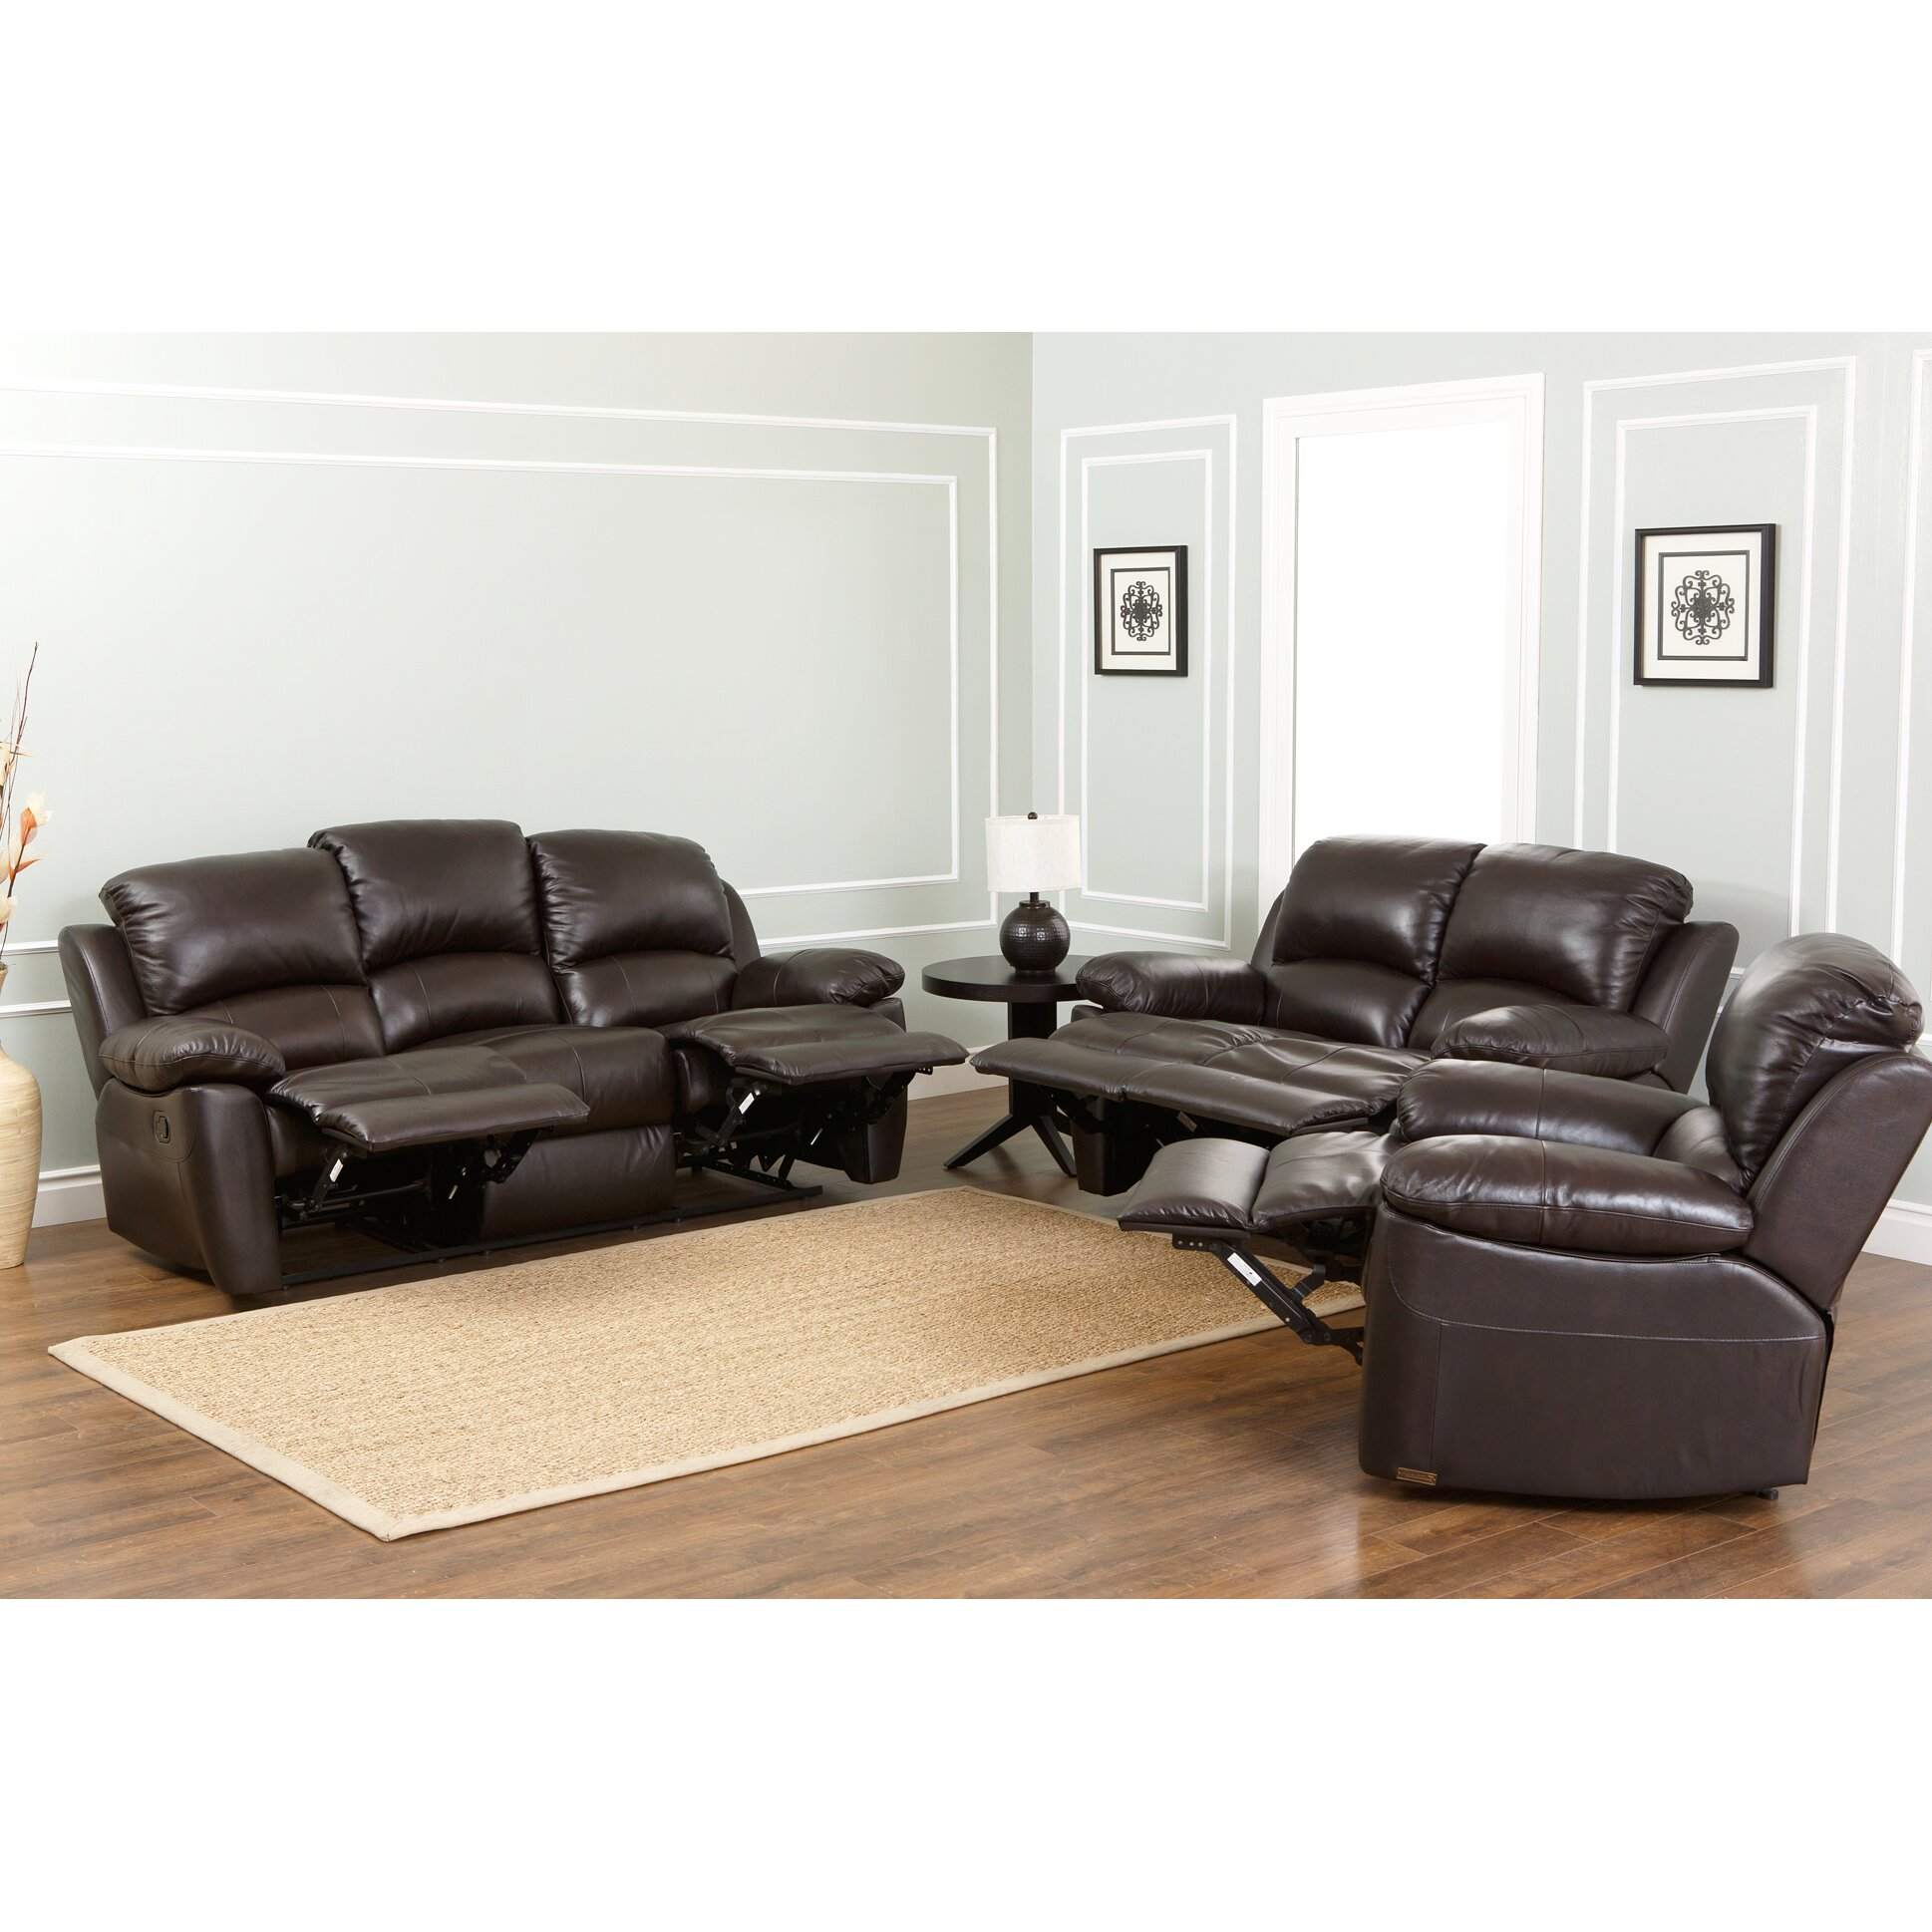 Abbyson Living Westwood Leather Reclining Sofa Reviews Wayfair